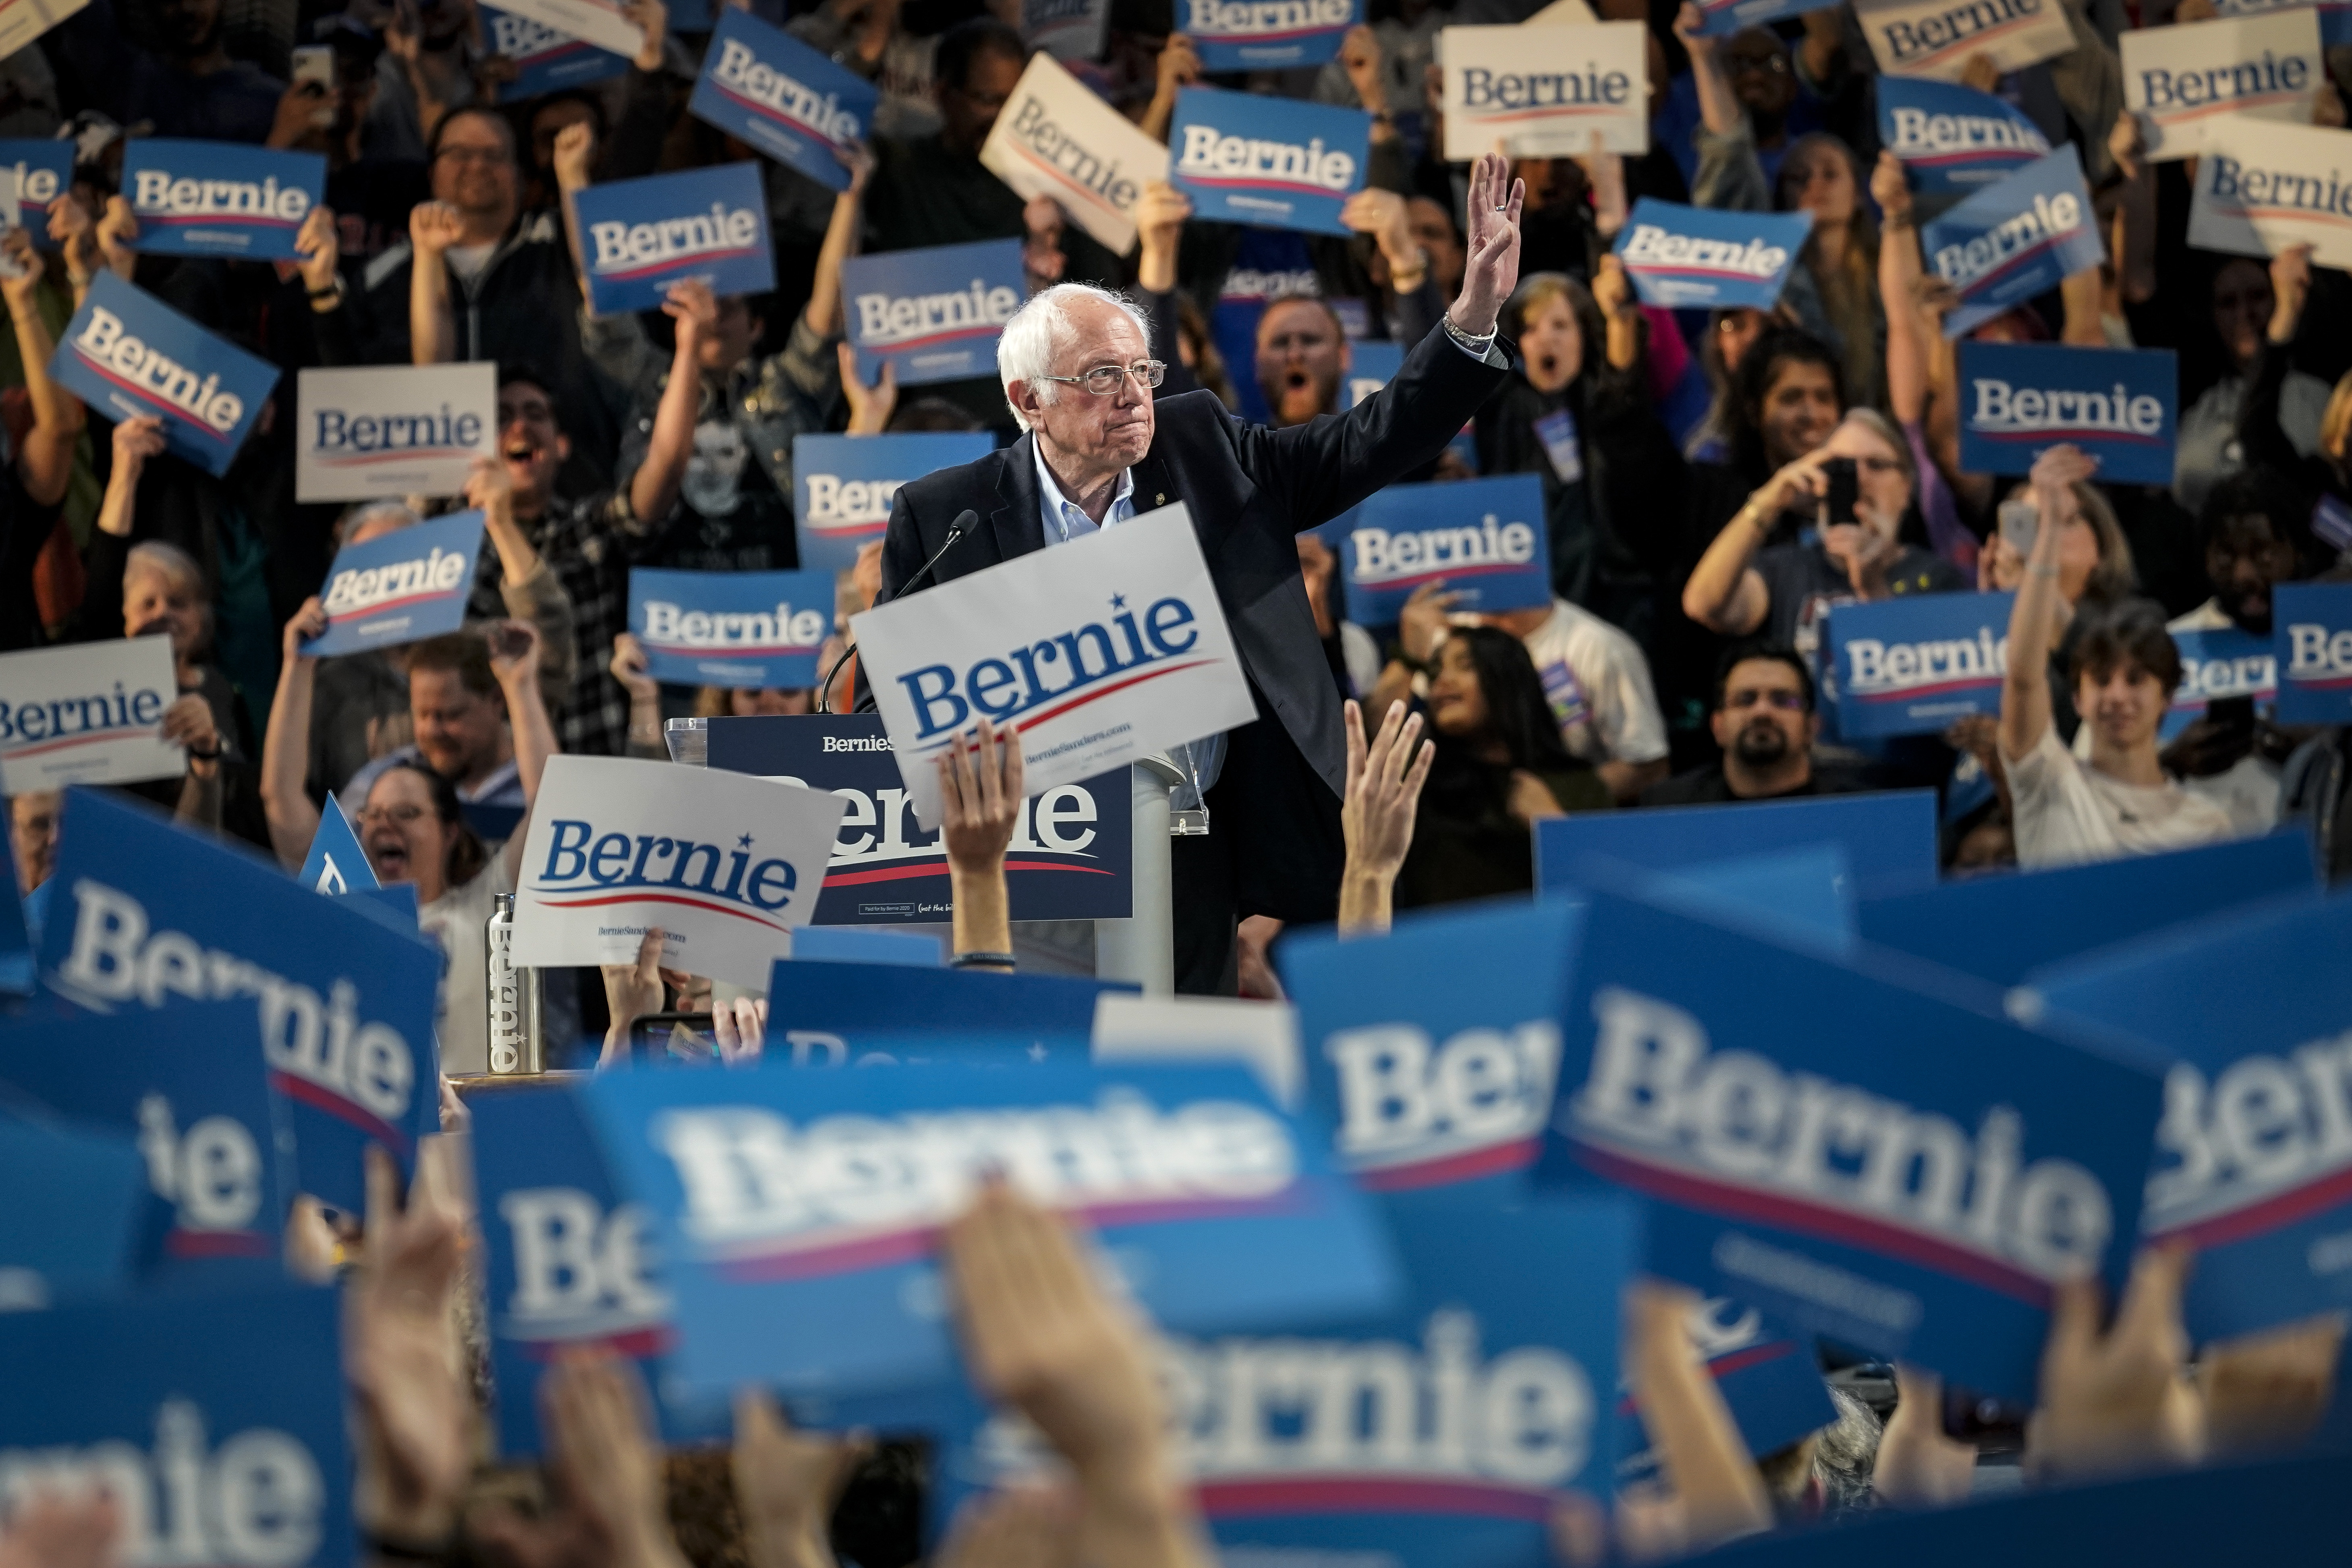 Democratic presidential candidate Sen. Bernie Sanders (I-VT) waves to the crowd during a campaign rally at the University of Houston on February 23, 2020 in Houston, Texas. (Drew Angerer/Getty Images)